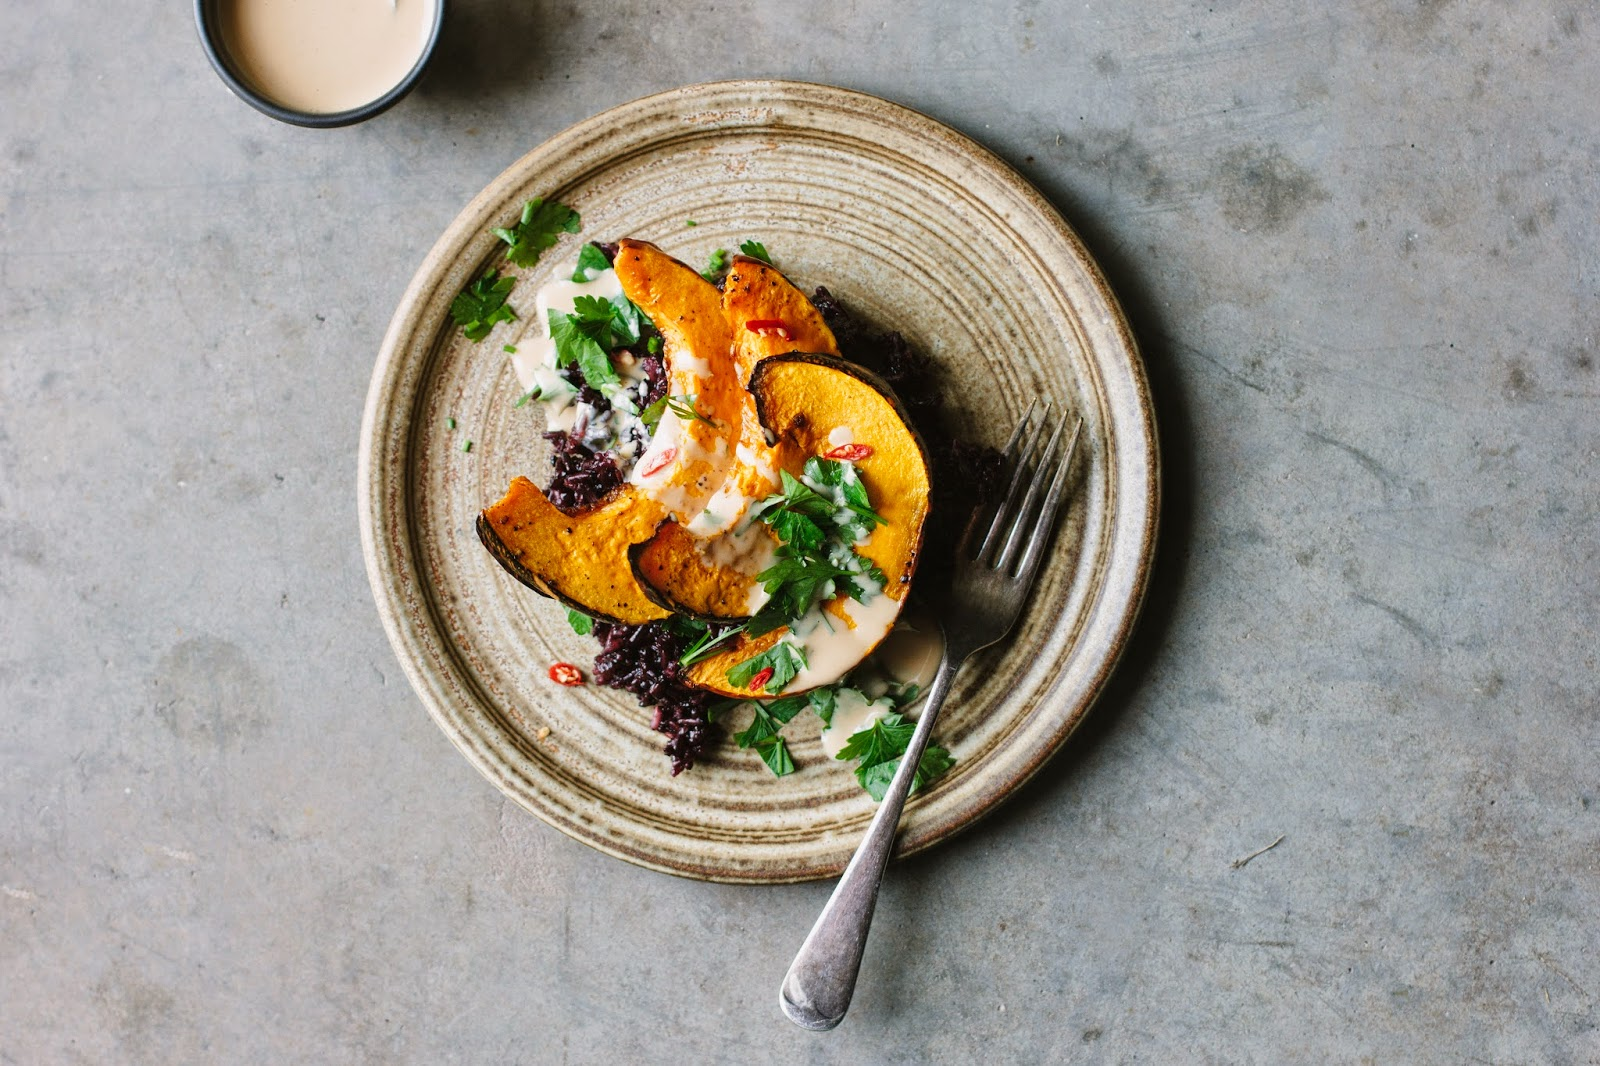 Sarah B's roasted pumpkin with black rice and tangerine tahini sauce recipe